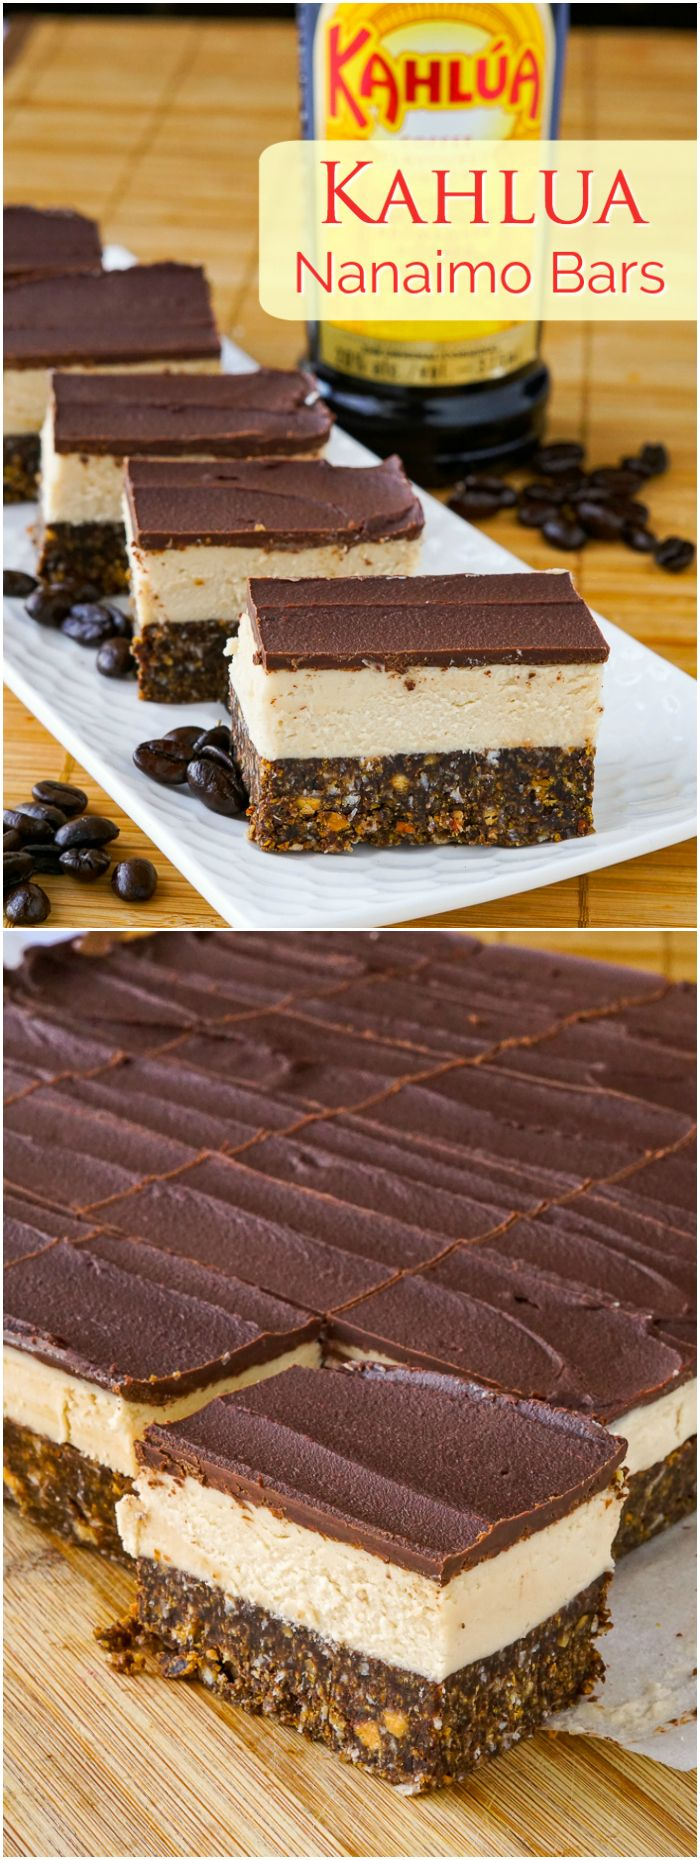 Kahlua Nanaimo Bars. A celebration of my favourite coffee liqueur and my favourite Canadian cookie bar. Perfect for the Holidays and freezer friendly too! Be sure to check out our entire collection of #RockRecipes100Cookies4Christmas